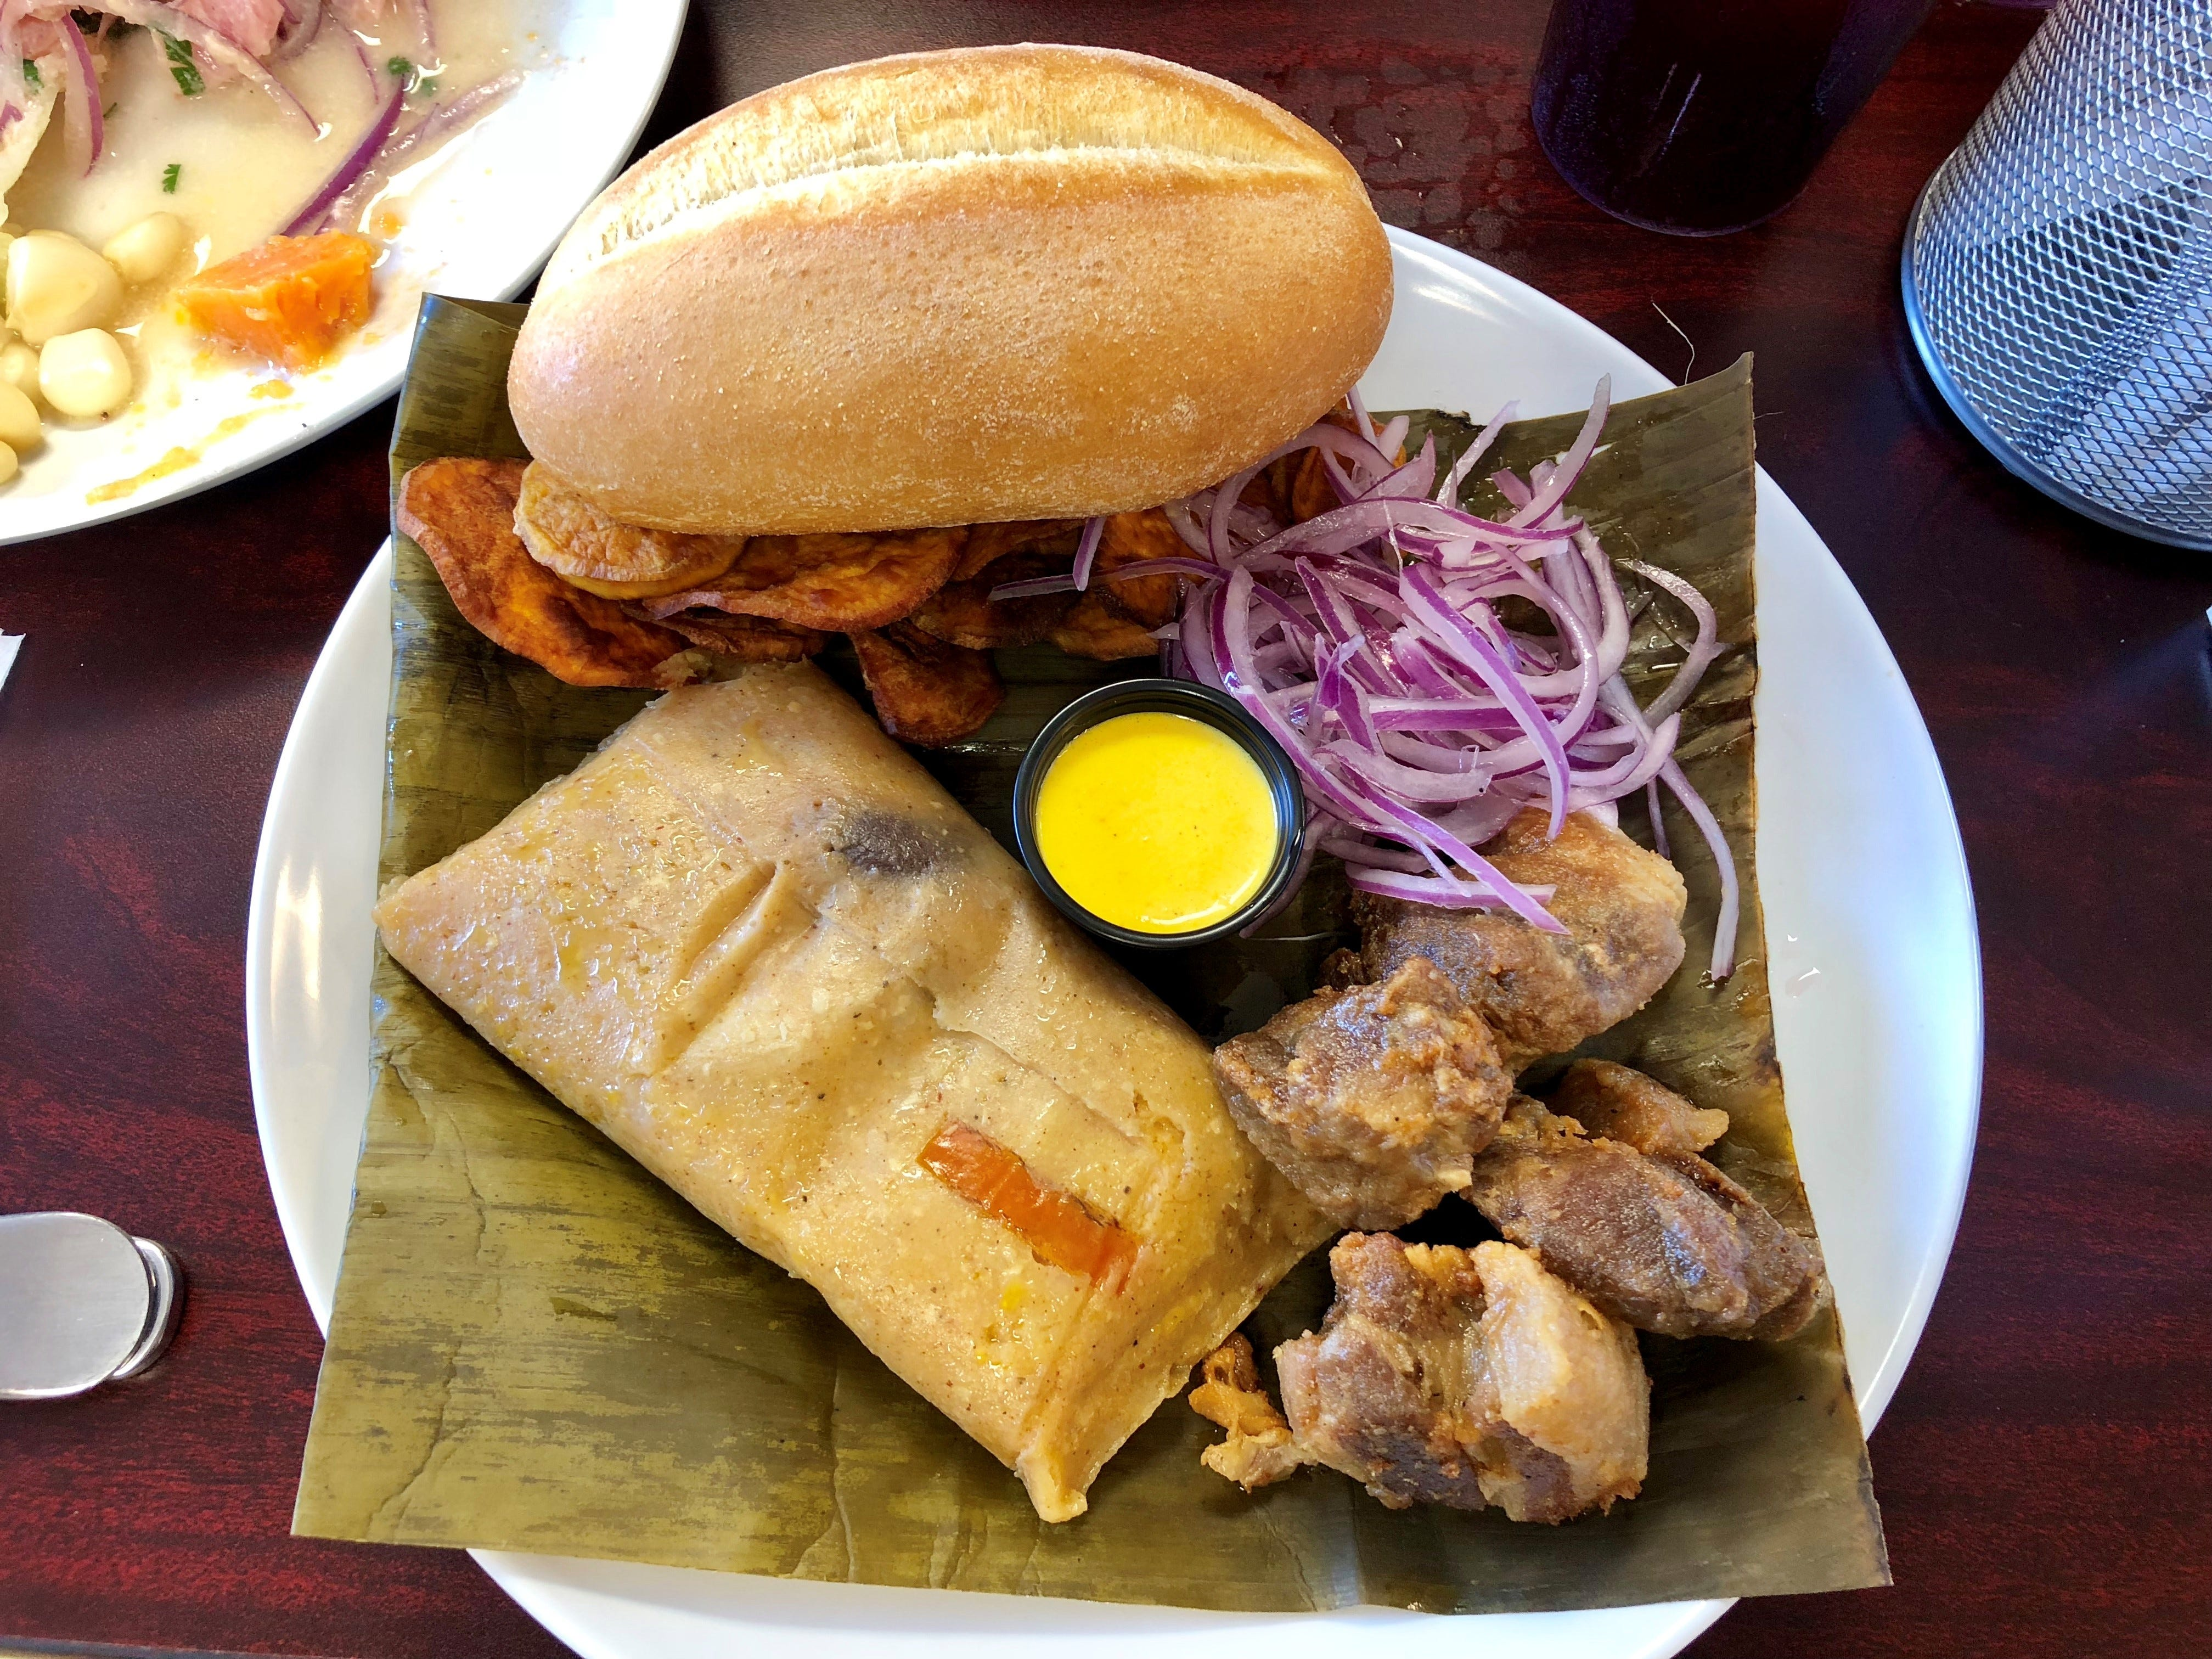 The desayuno Limeno, or Lima-style breakfast, from Renzo's Peruvian Kitchen features chicharron, a tamale, sweet-potato chips and pickled onions.